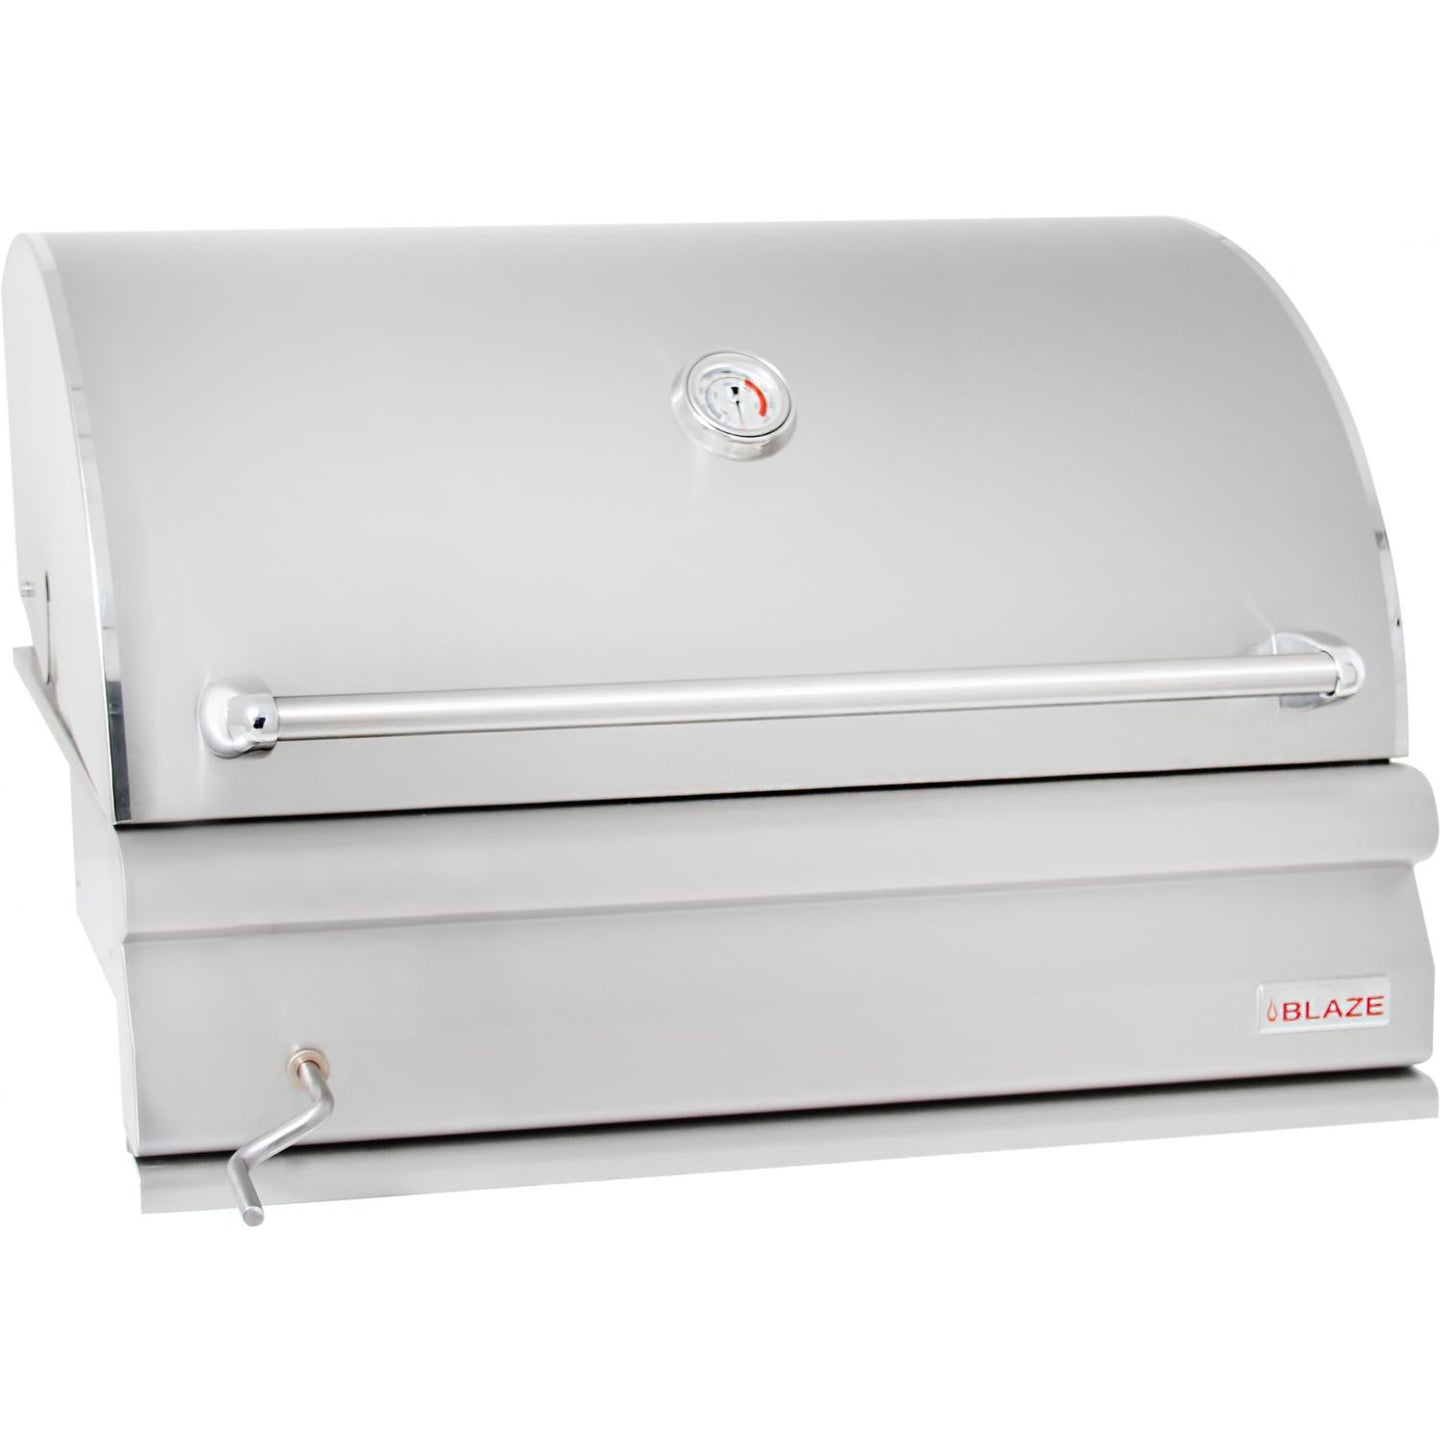 Blaze 32-Inch Built-In Stainless Steel Charcoal Grill - The Garden District